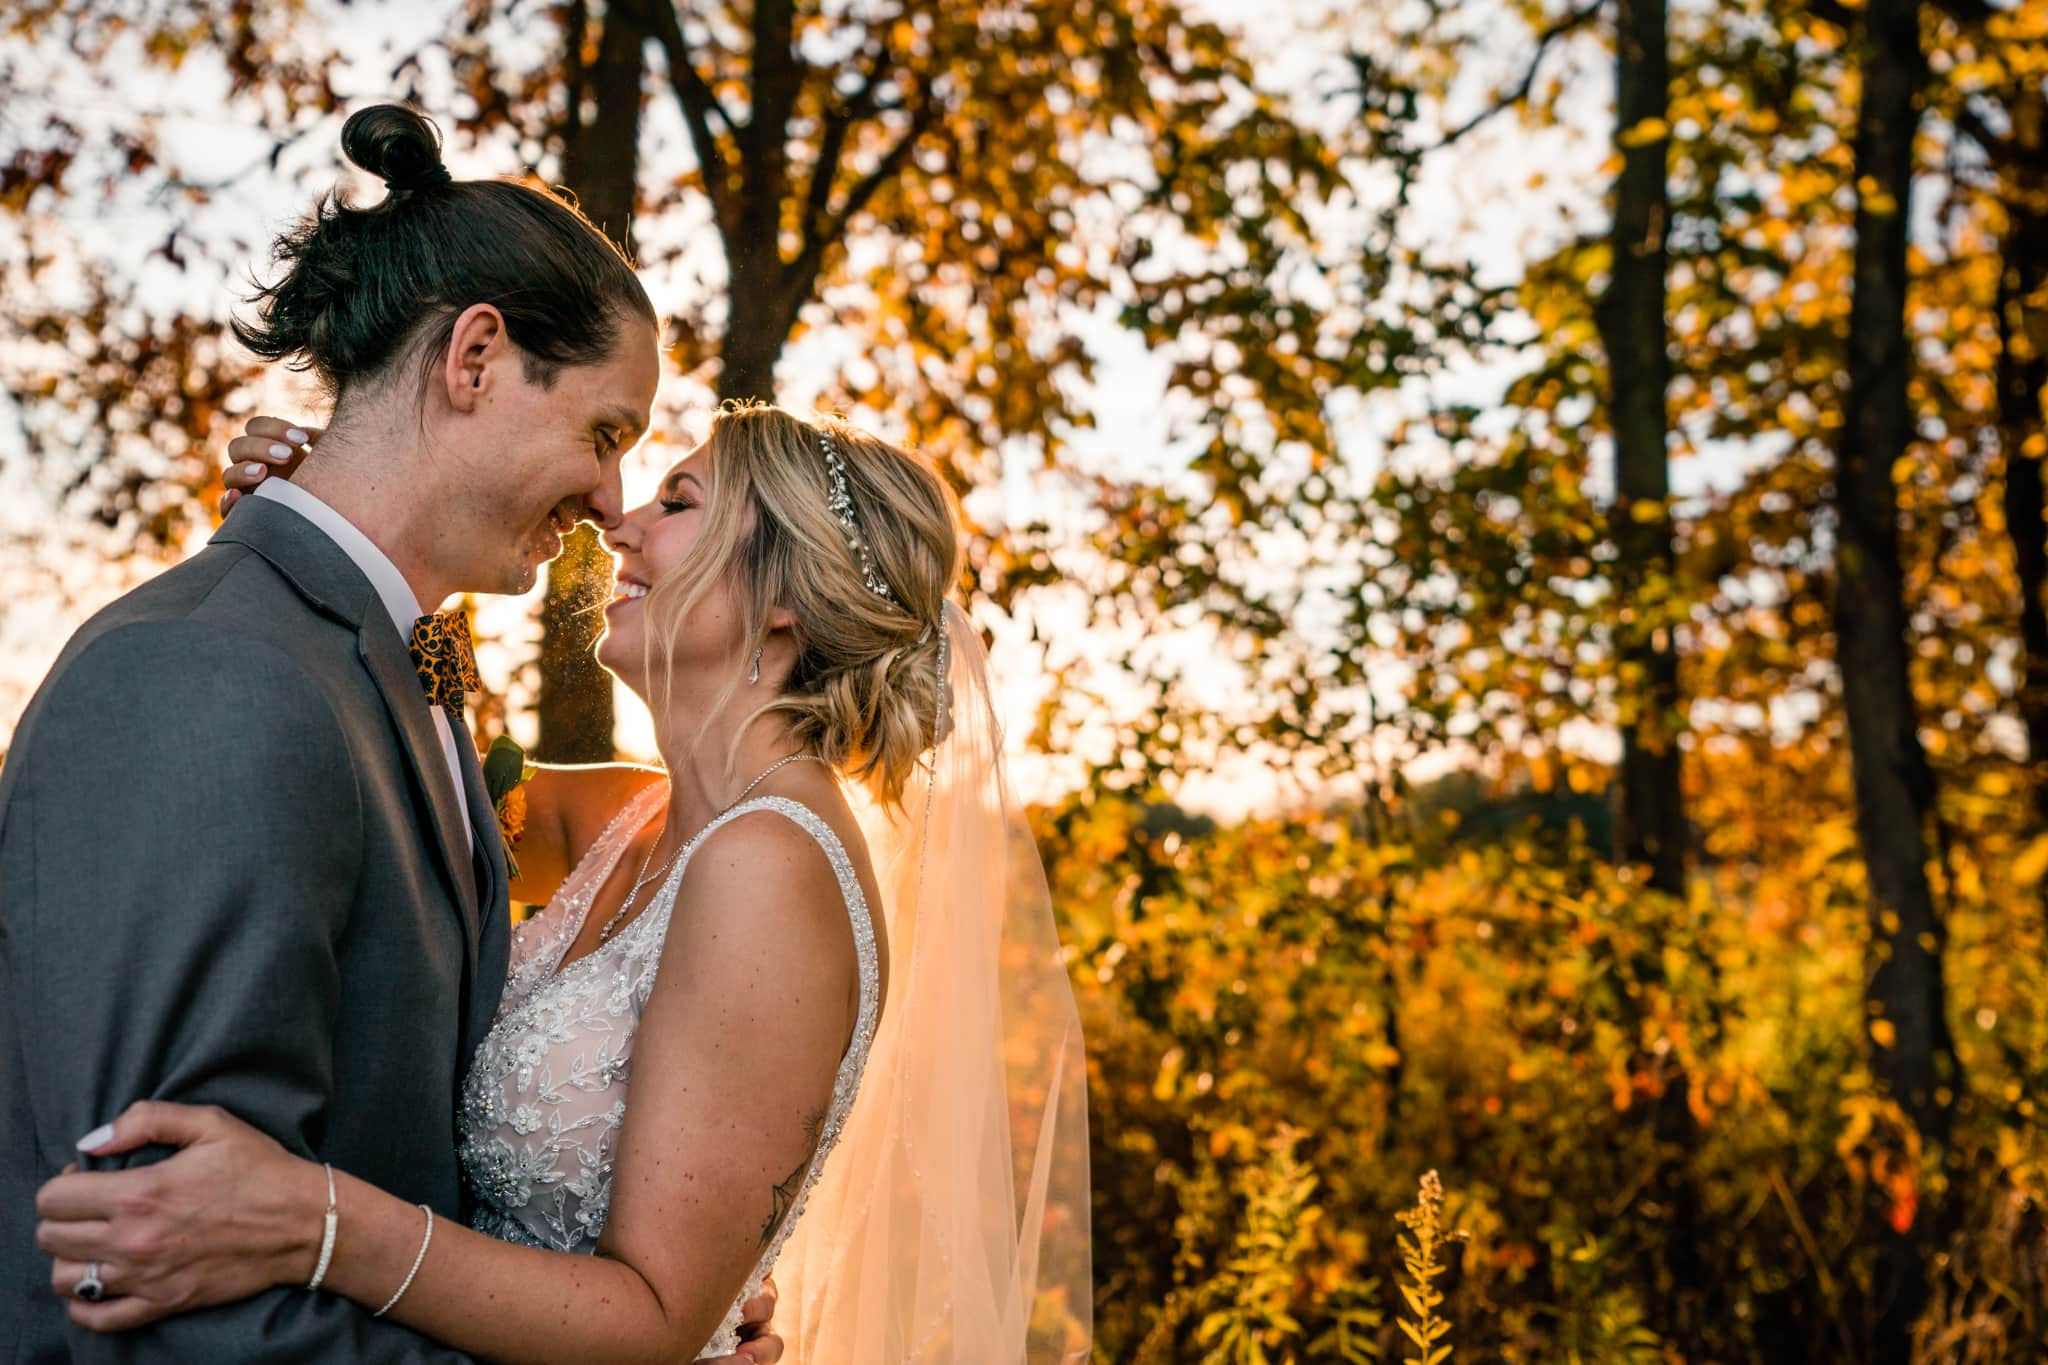 Bride and groom laugh together while hugging